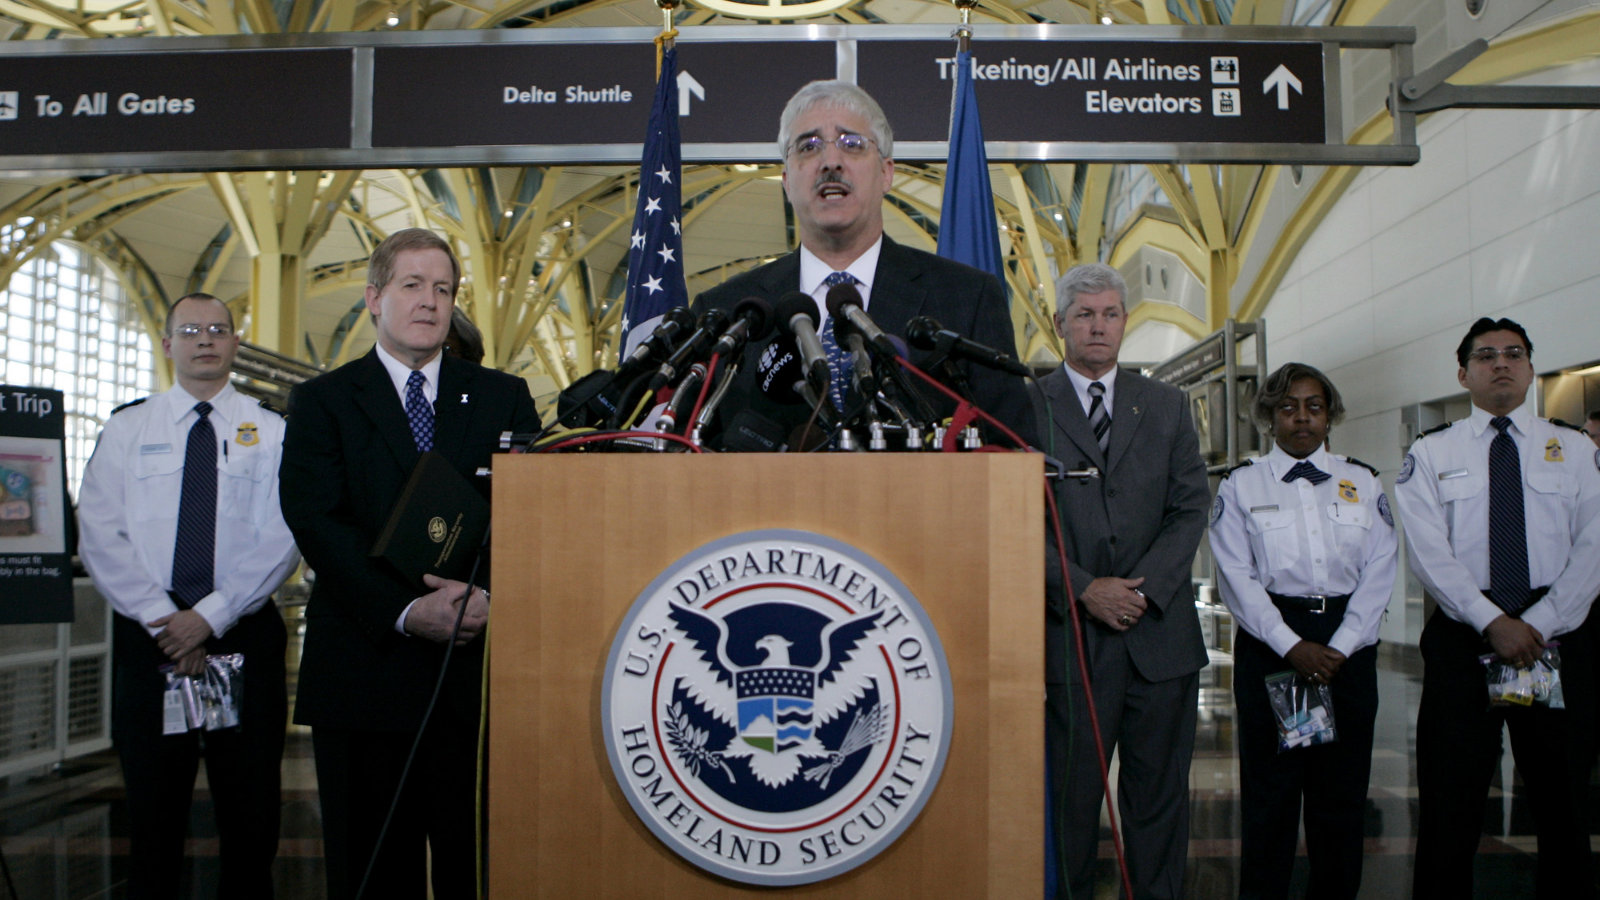 Click here to read A Billion Details and No Precedent—An Inside Look at the TSA's Scrambling Start